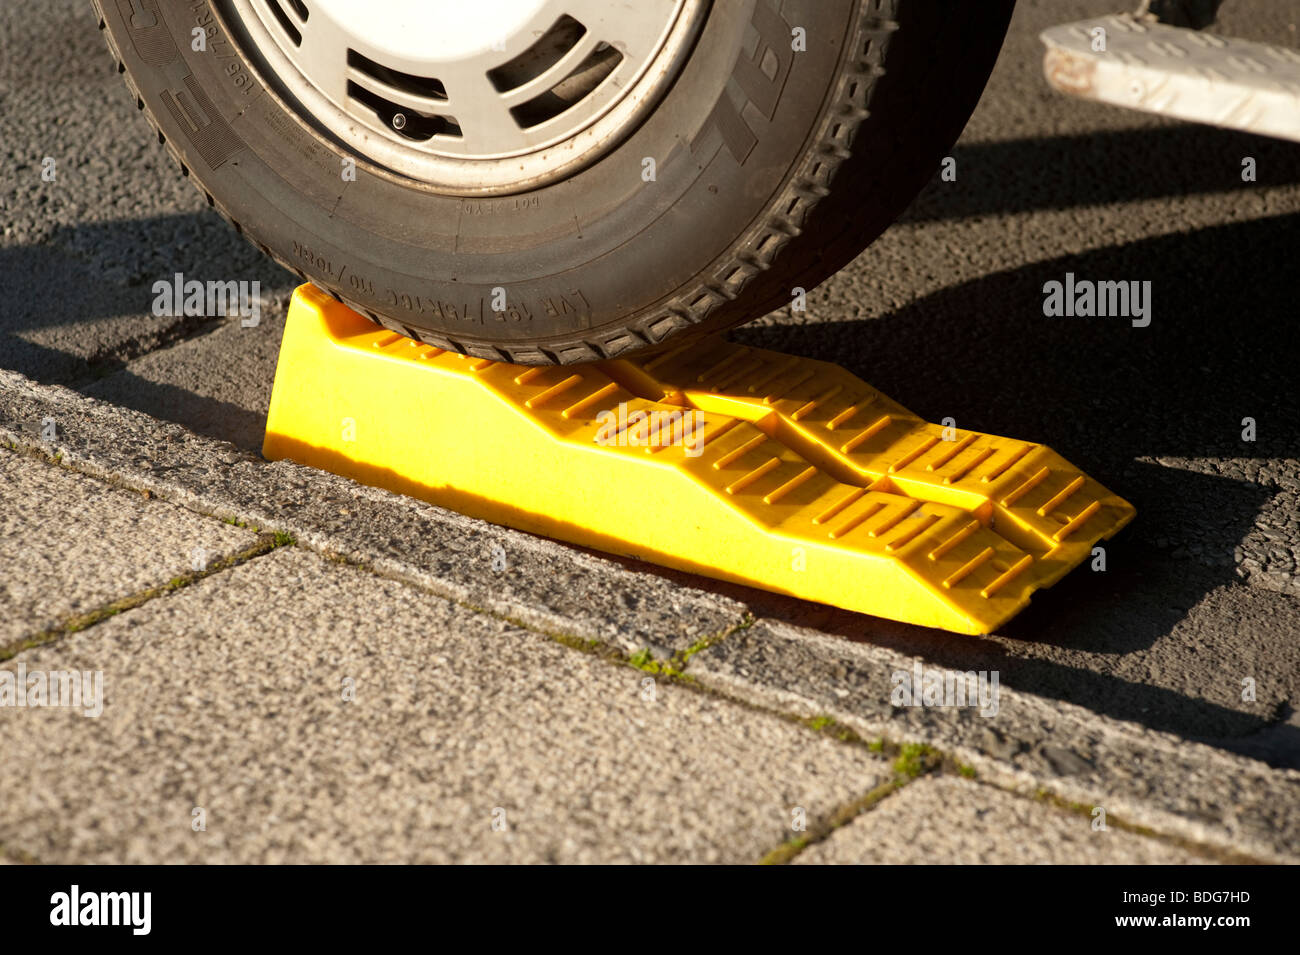 yellow plastic step wedge chocks placed under the wheel of a camper van to level the vehicle when parked on the - Stock Image